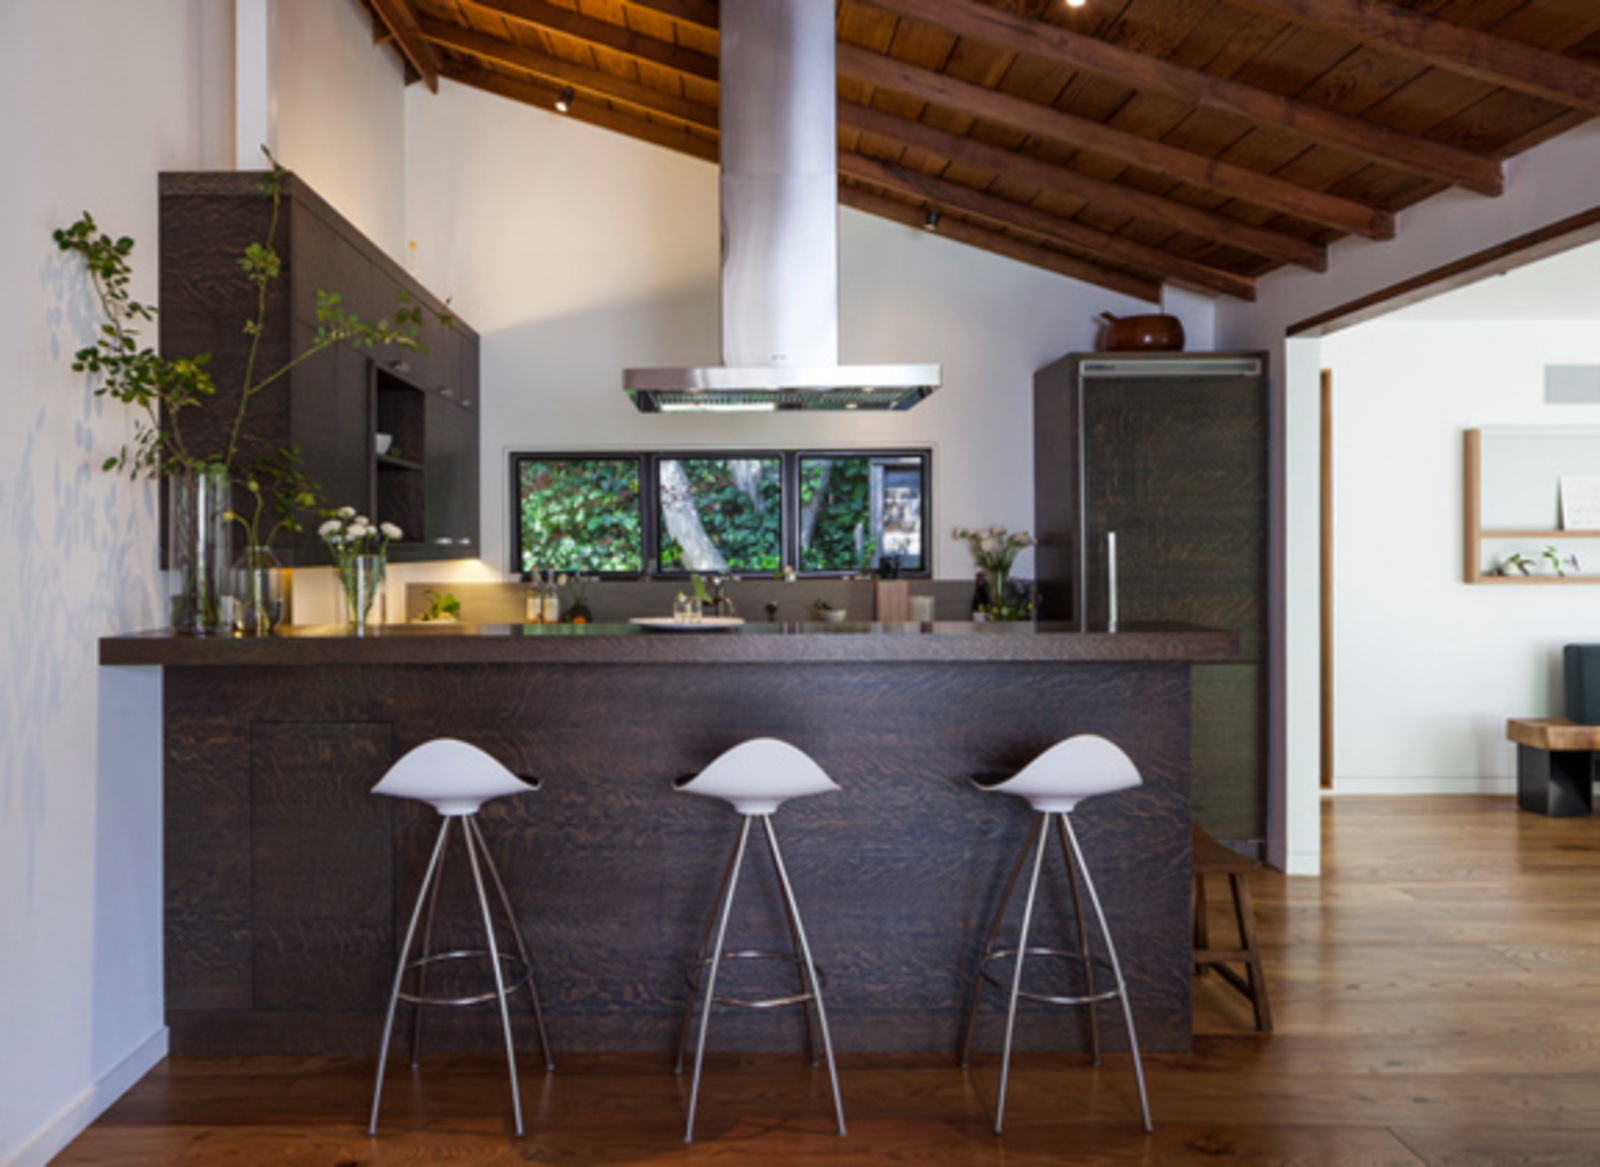 A new kitchen in the old part of the building contrasts sleek dark wood millwork with the original vaulted ceilings, which Gargan and Wagner scrubbed and sanded themselves to reveal the old-growth redwood.  Kitchen by Jeremiah Otis from Inside a Renovated Cottage in Marin